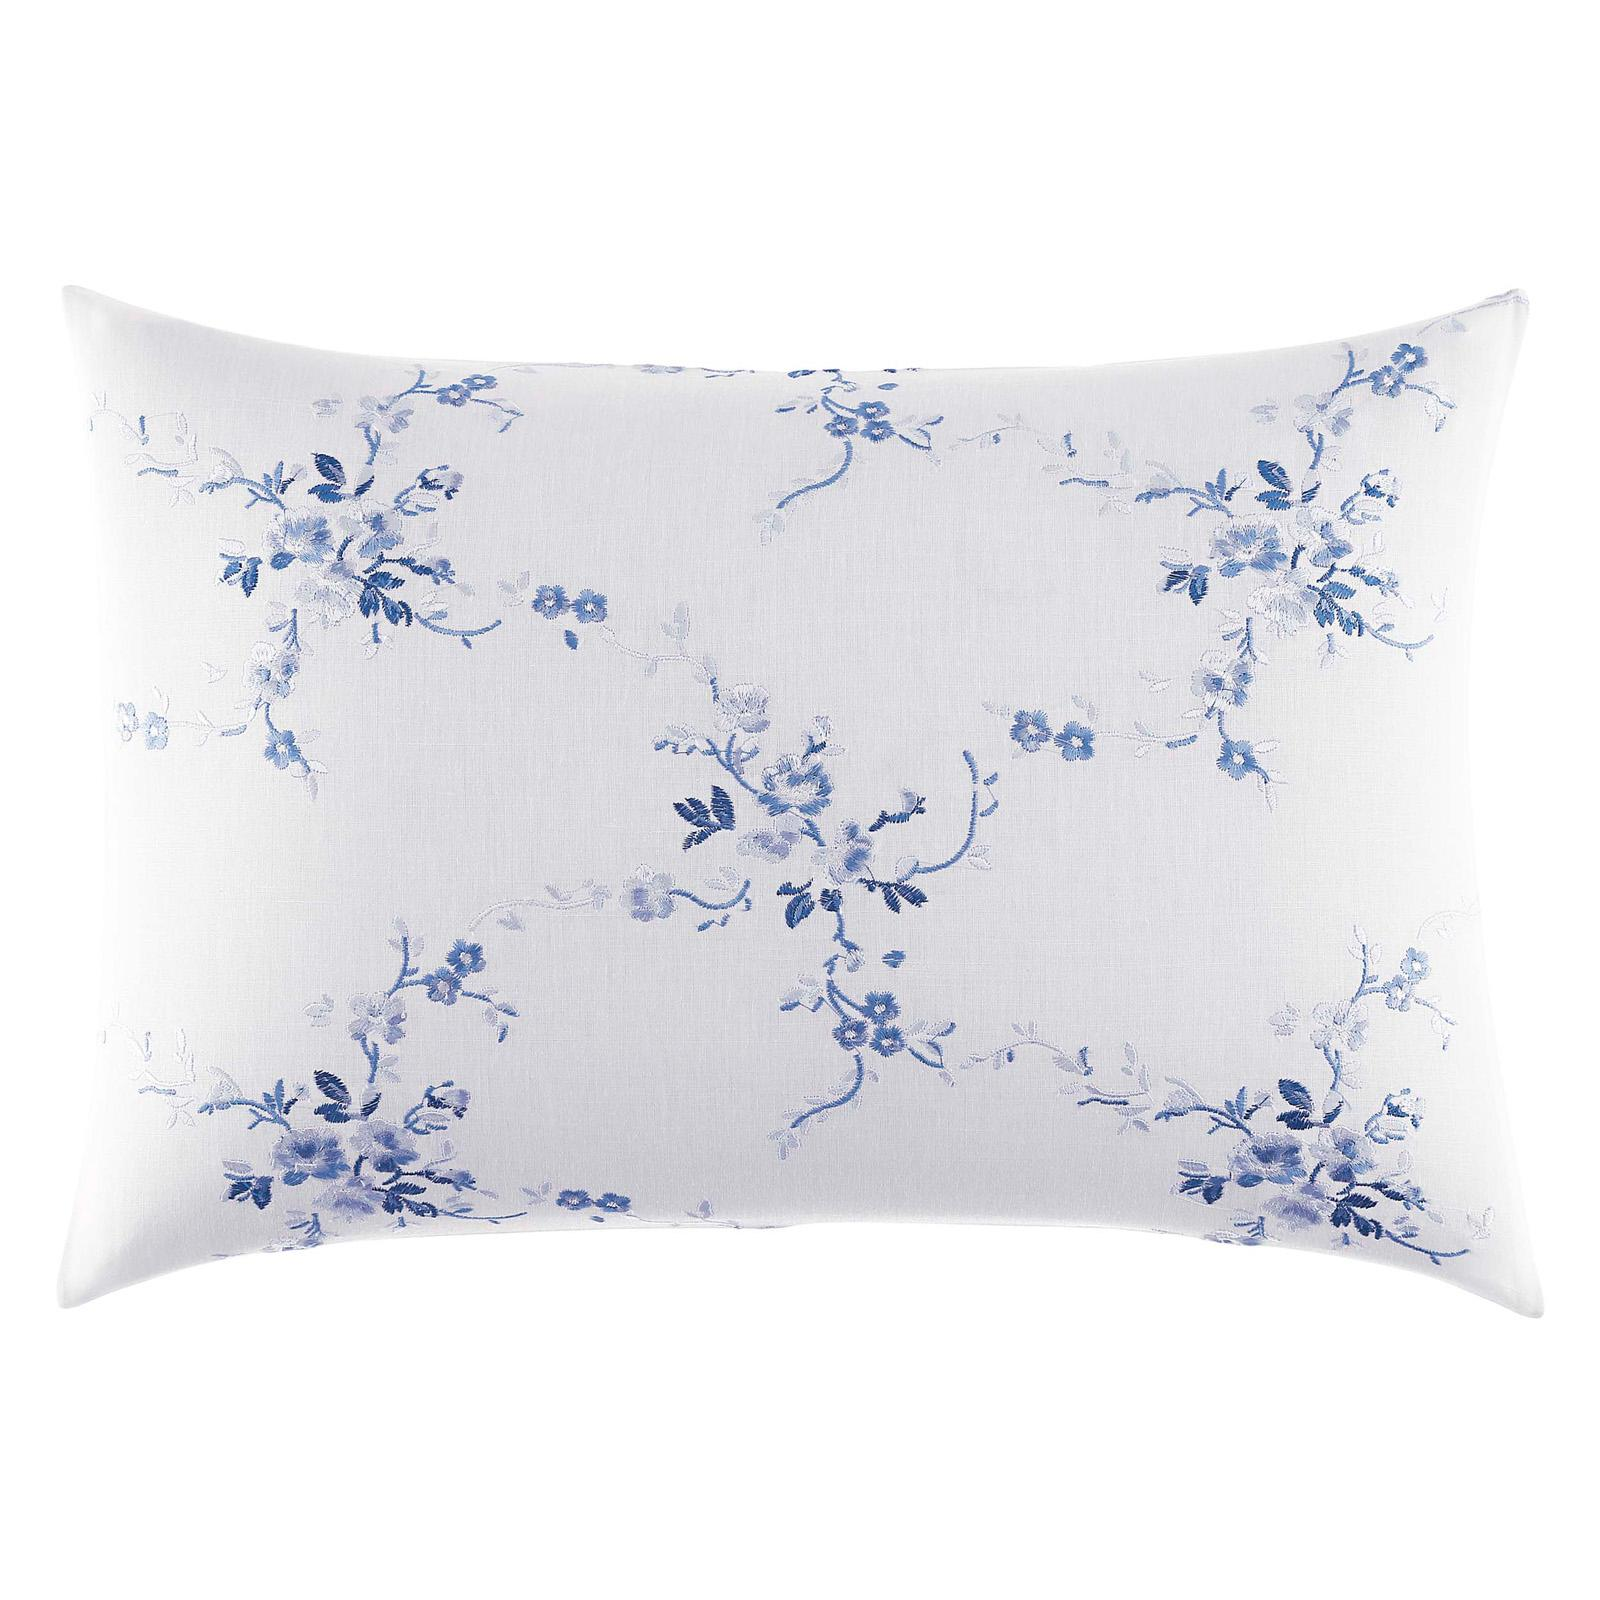 Laura Ashley Charlotte 14x20 Embroidered Breakfast Pillow - 211395